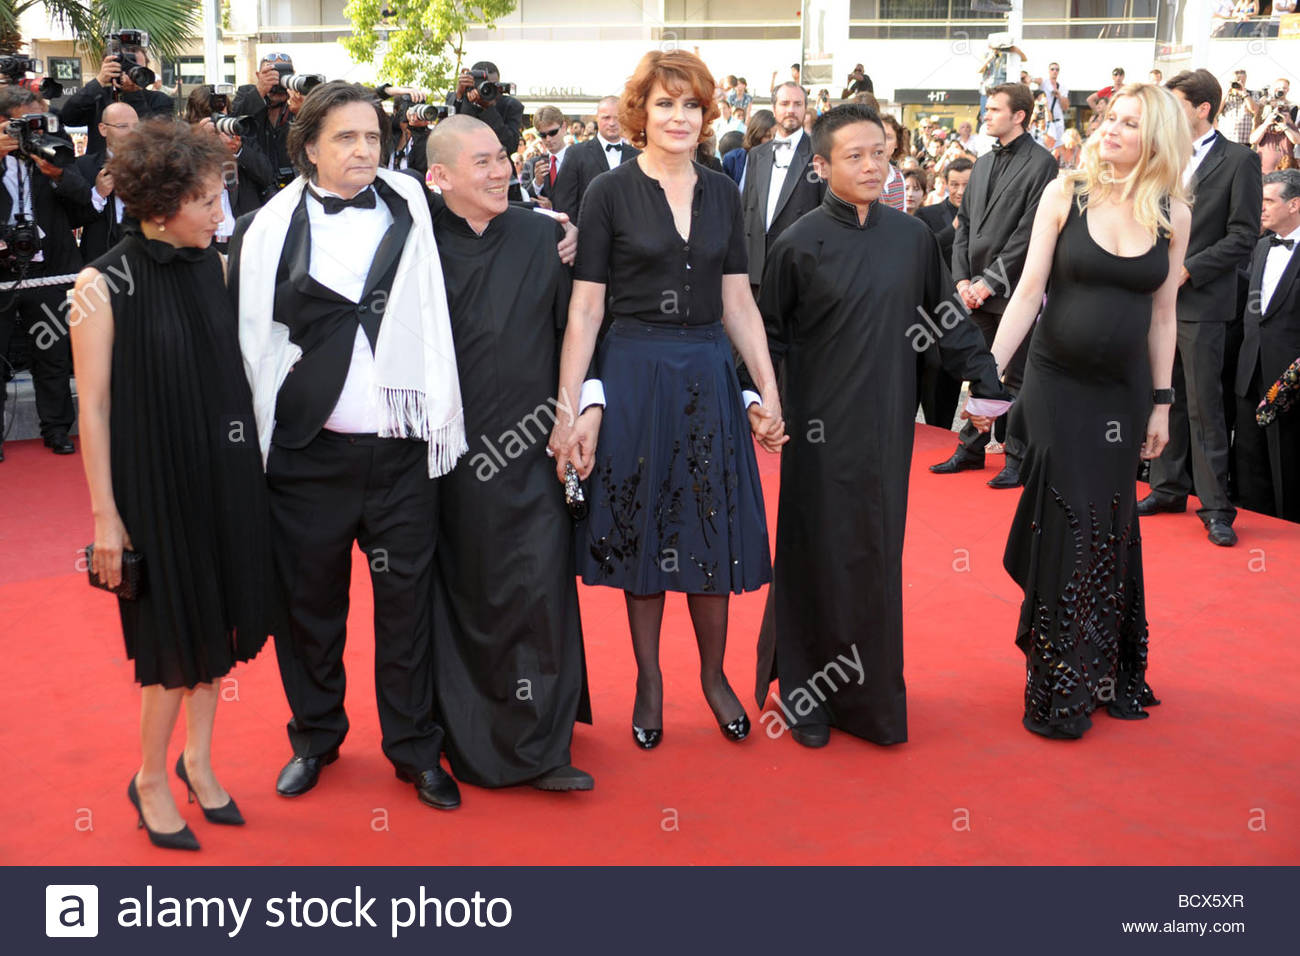 cannes 2009, 62nd cannes film festival - Stock Image